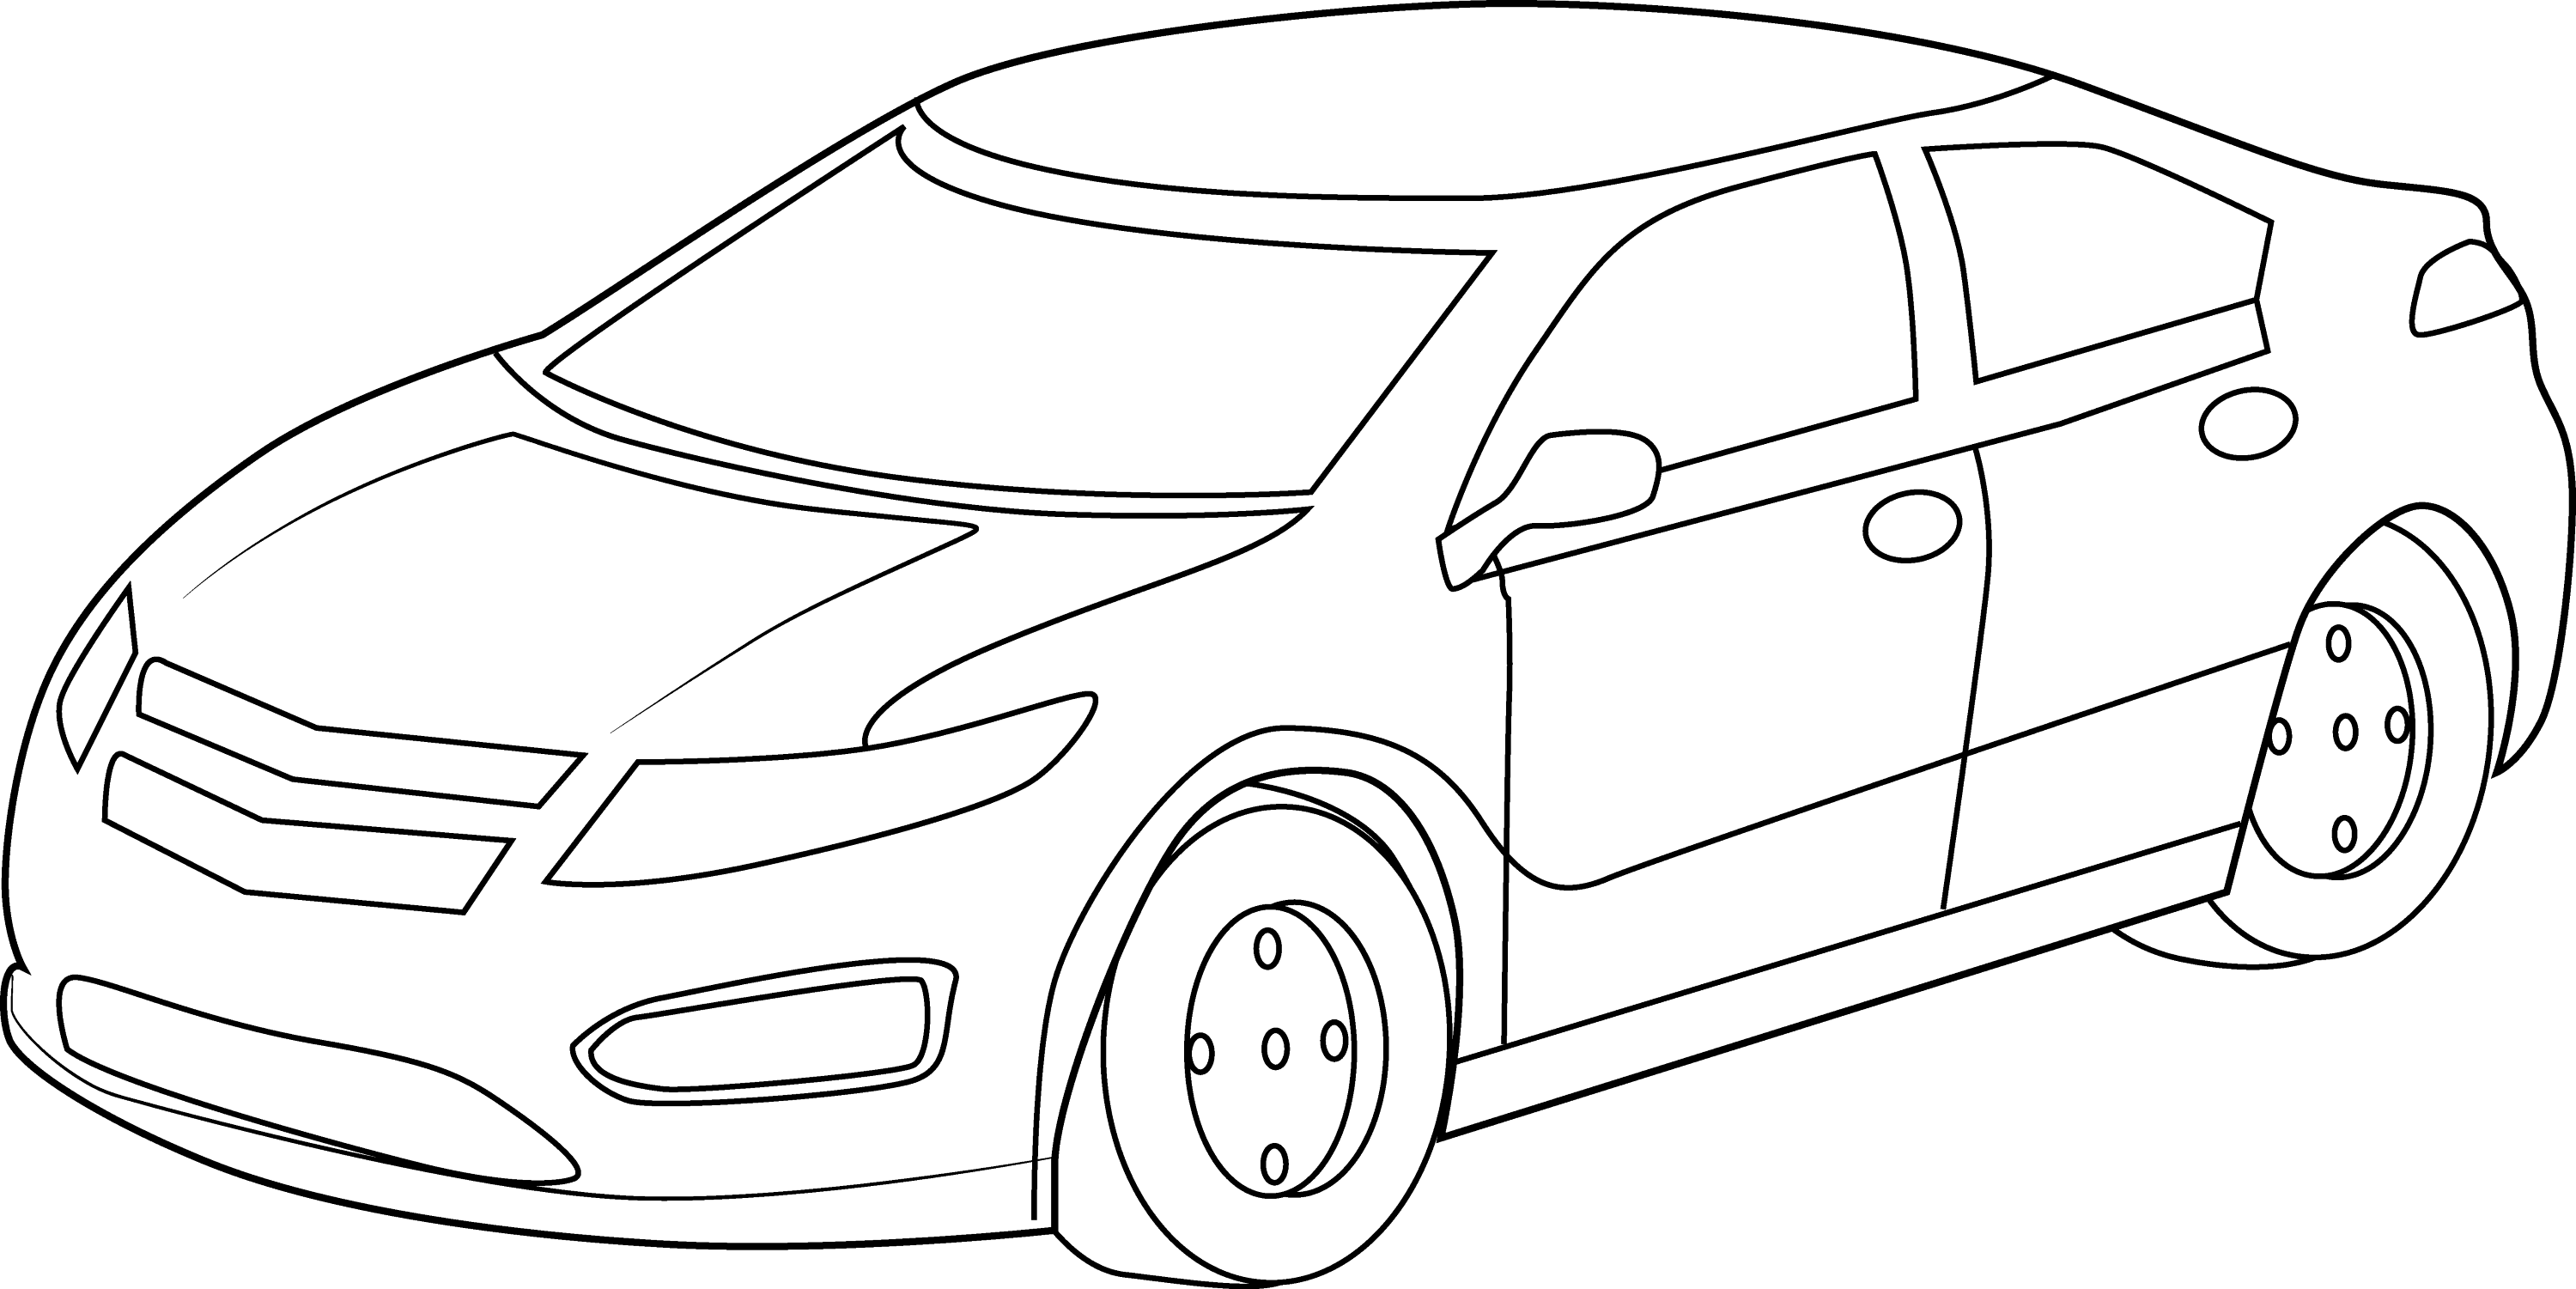 Line art car : Cool sports car coloring page free clip art